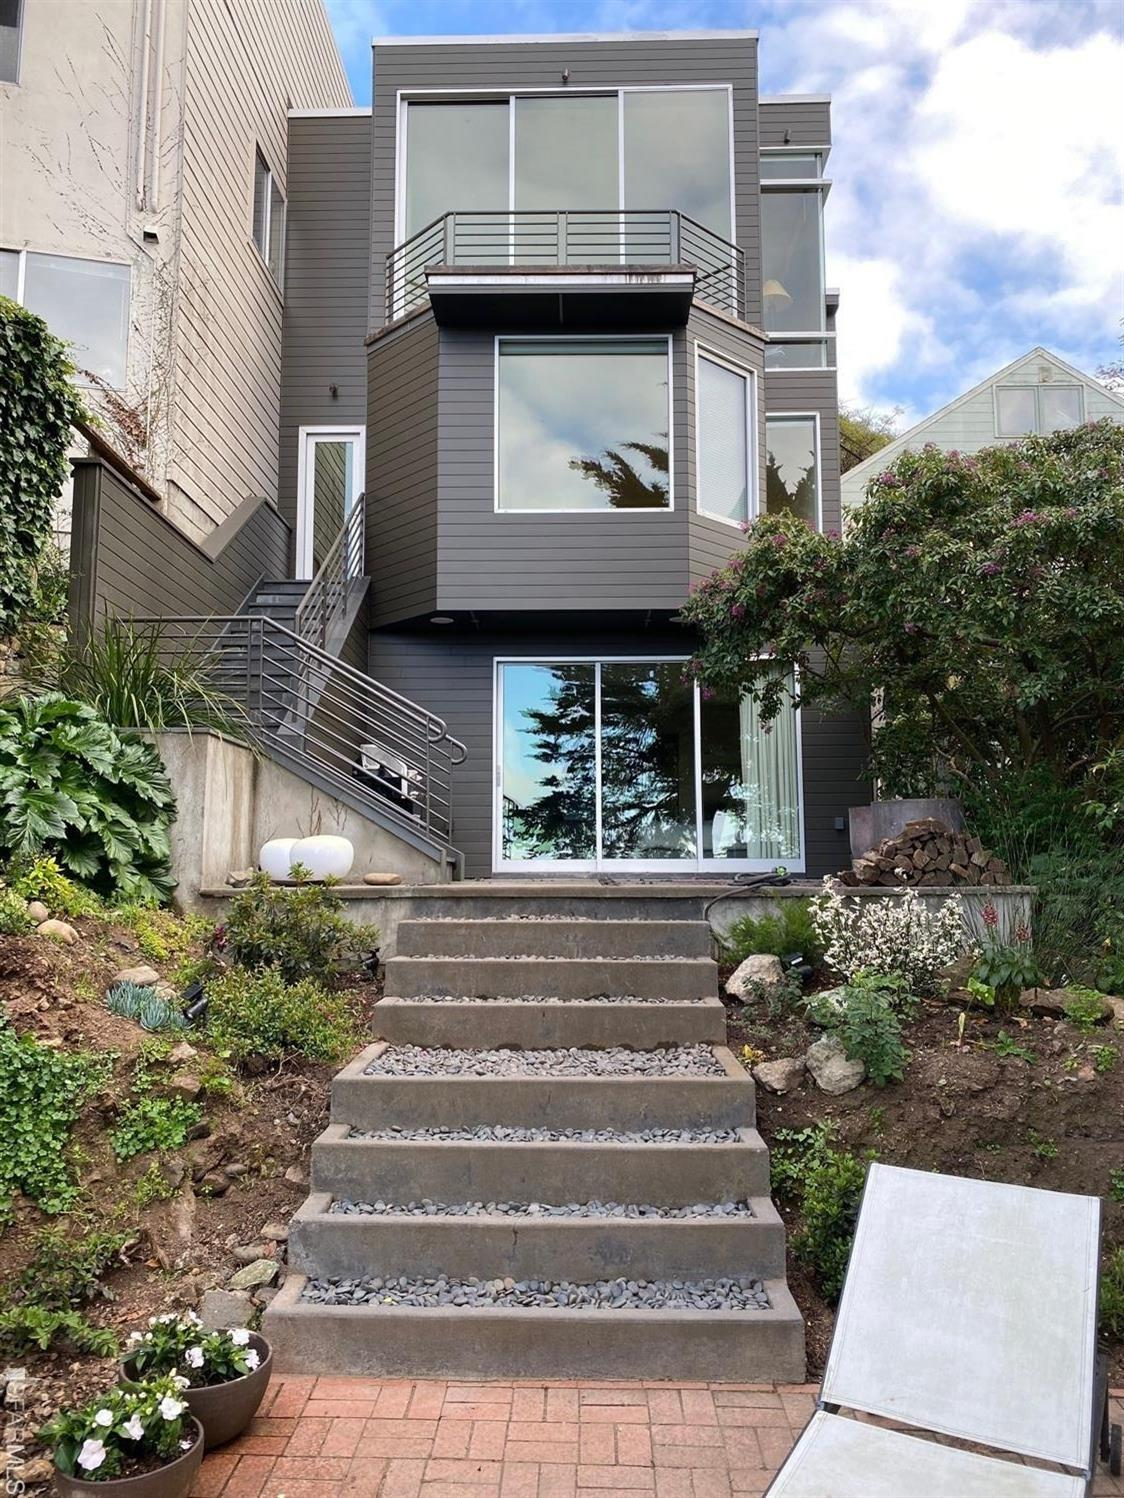 2 patios and the landscaped garden at the rear of the contemporary residence with huge picture windows and sweeping views from a